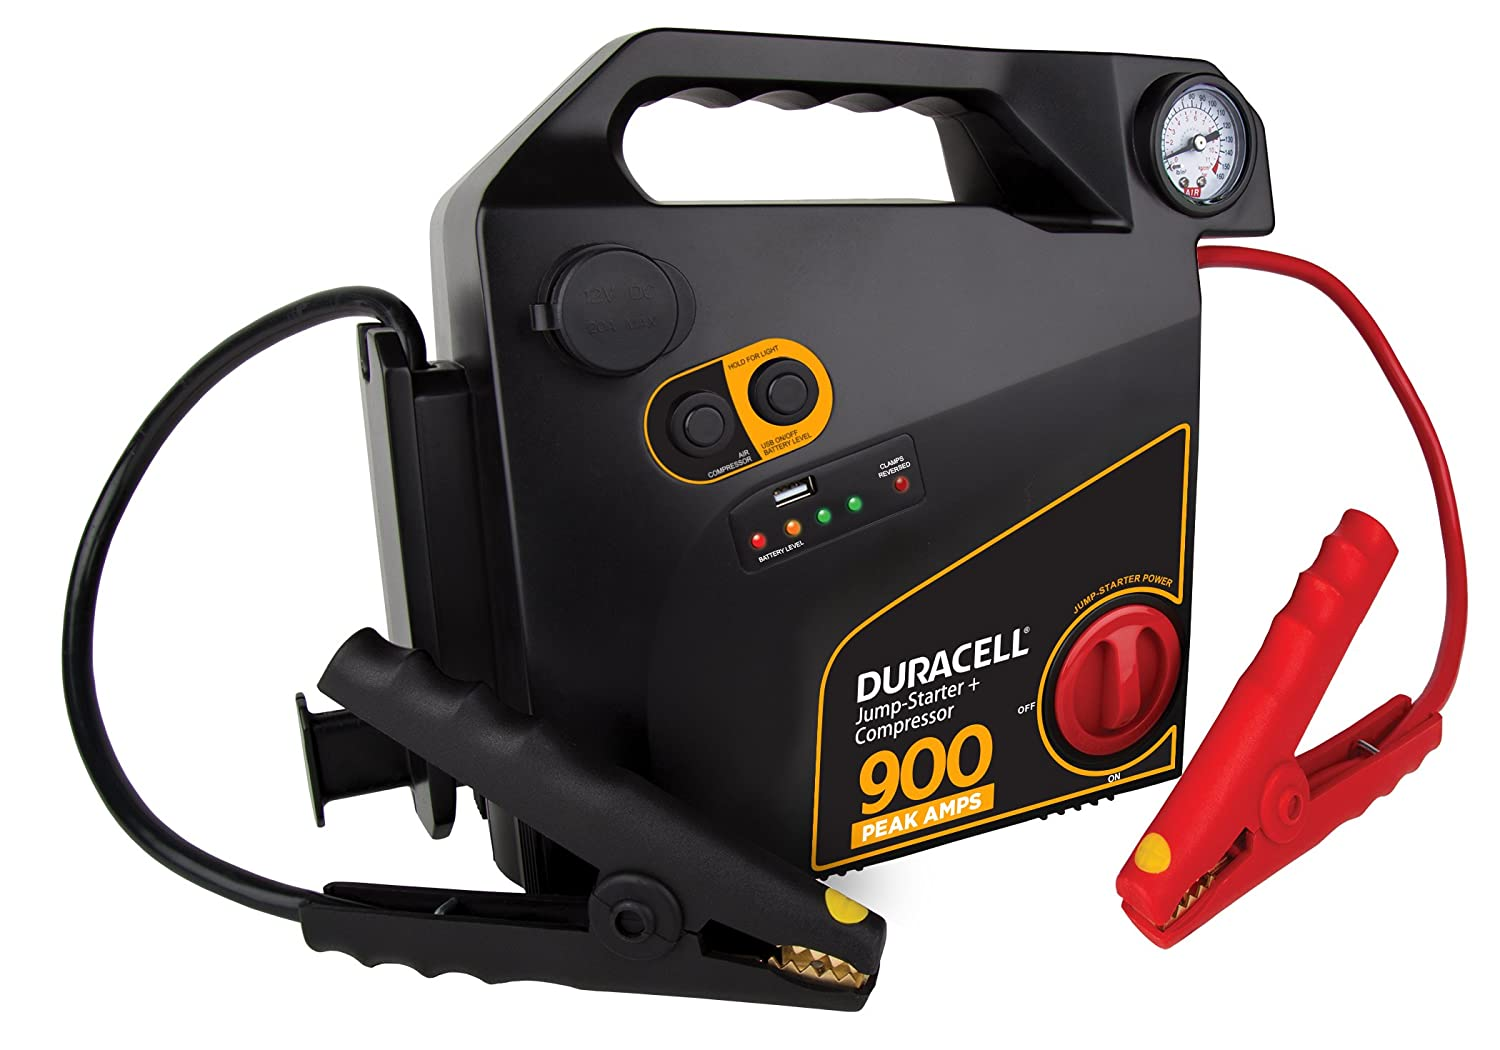 Duracell 900 Peak Amps Portable Emergency Jumpstarter with Compressor